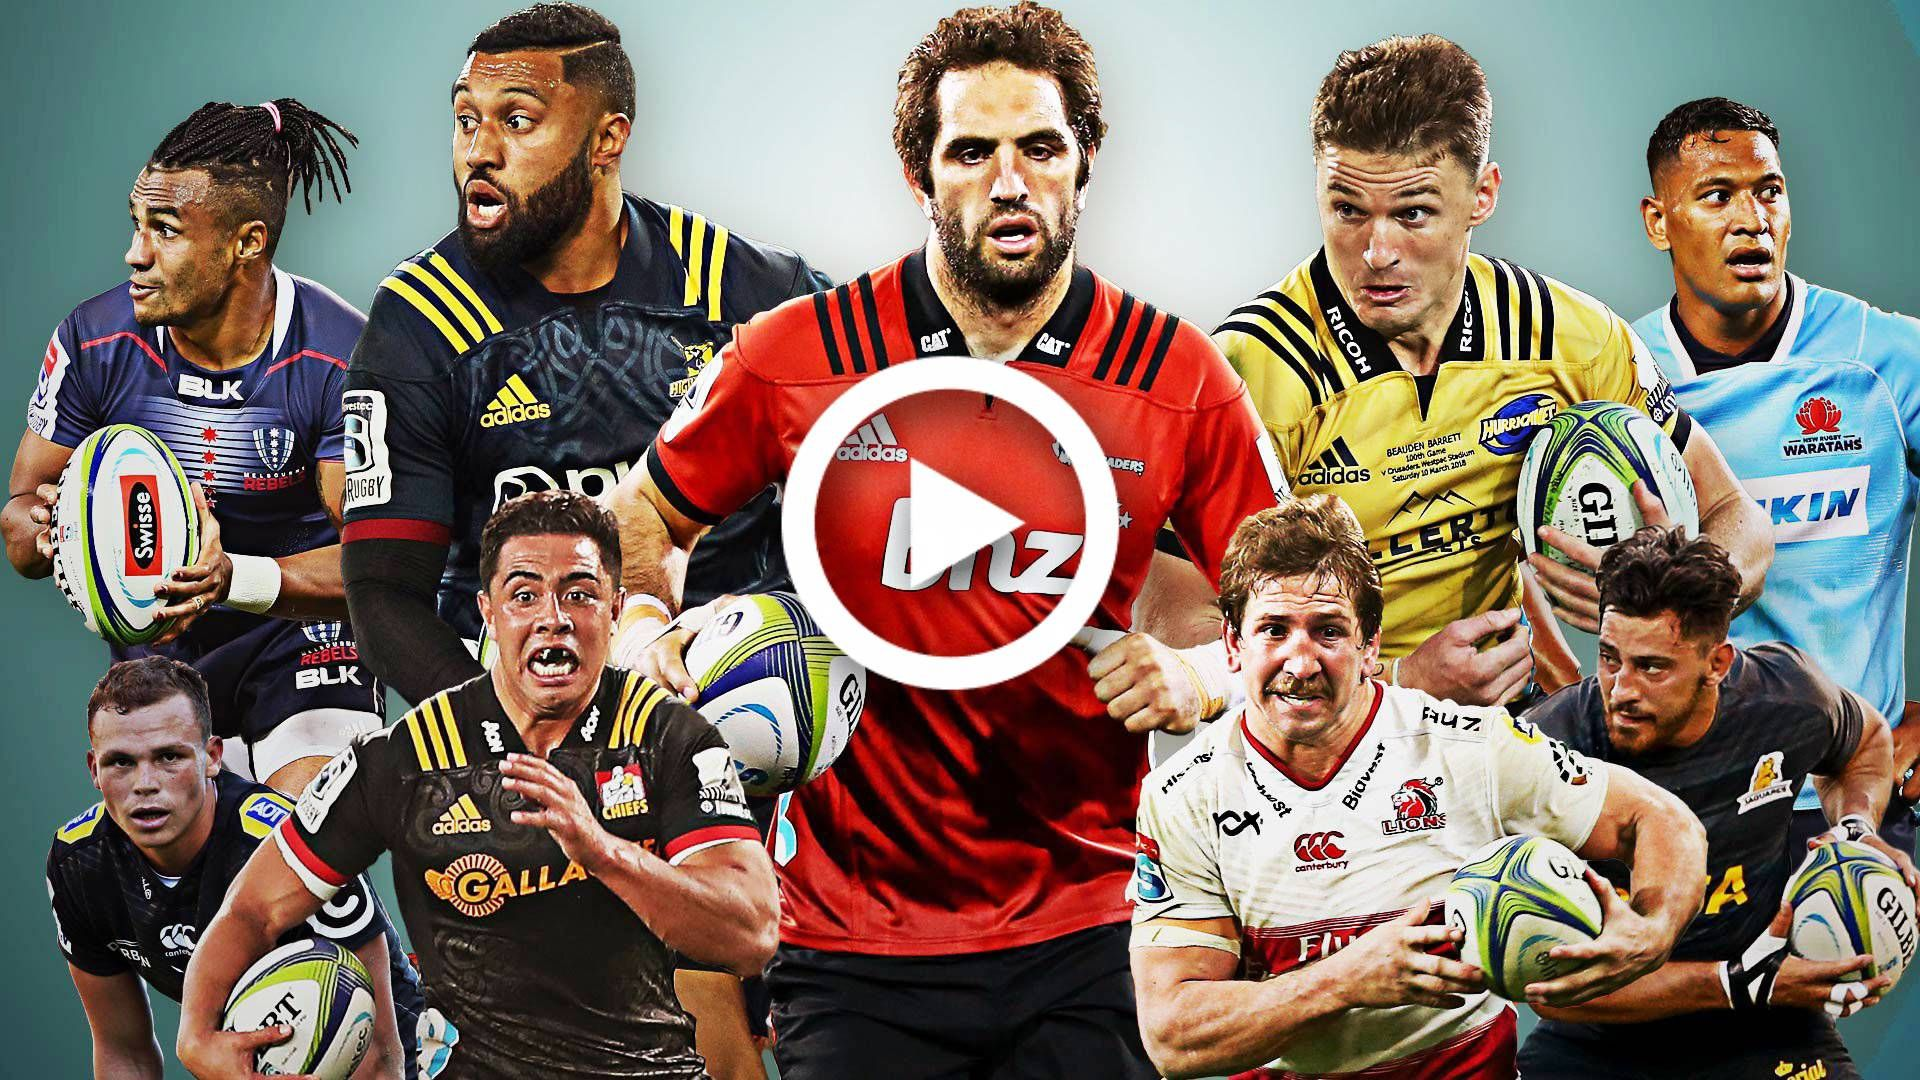 Watch Super Rugby Game 2020 Live Stream Tv Channel Online Kick Off Time Schedule In 2020 Super Rugby Rugby Rugby Games